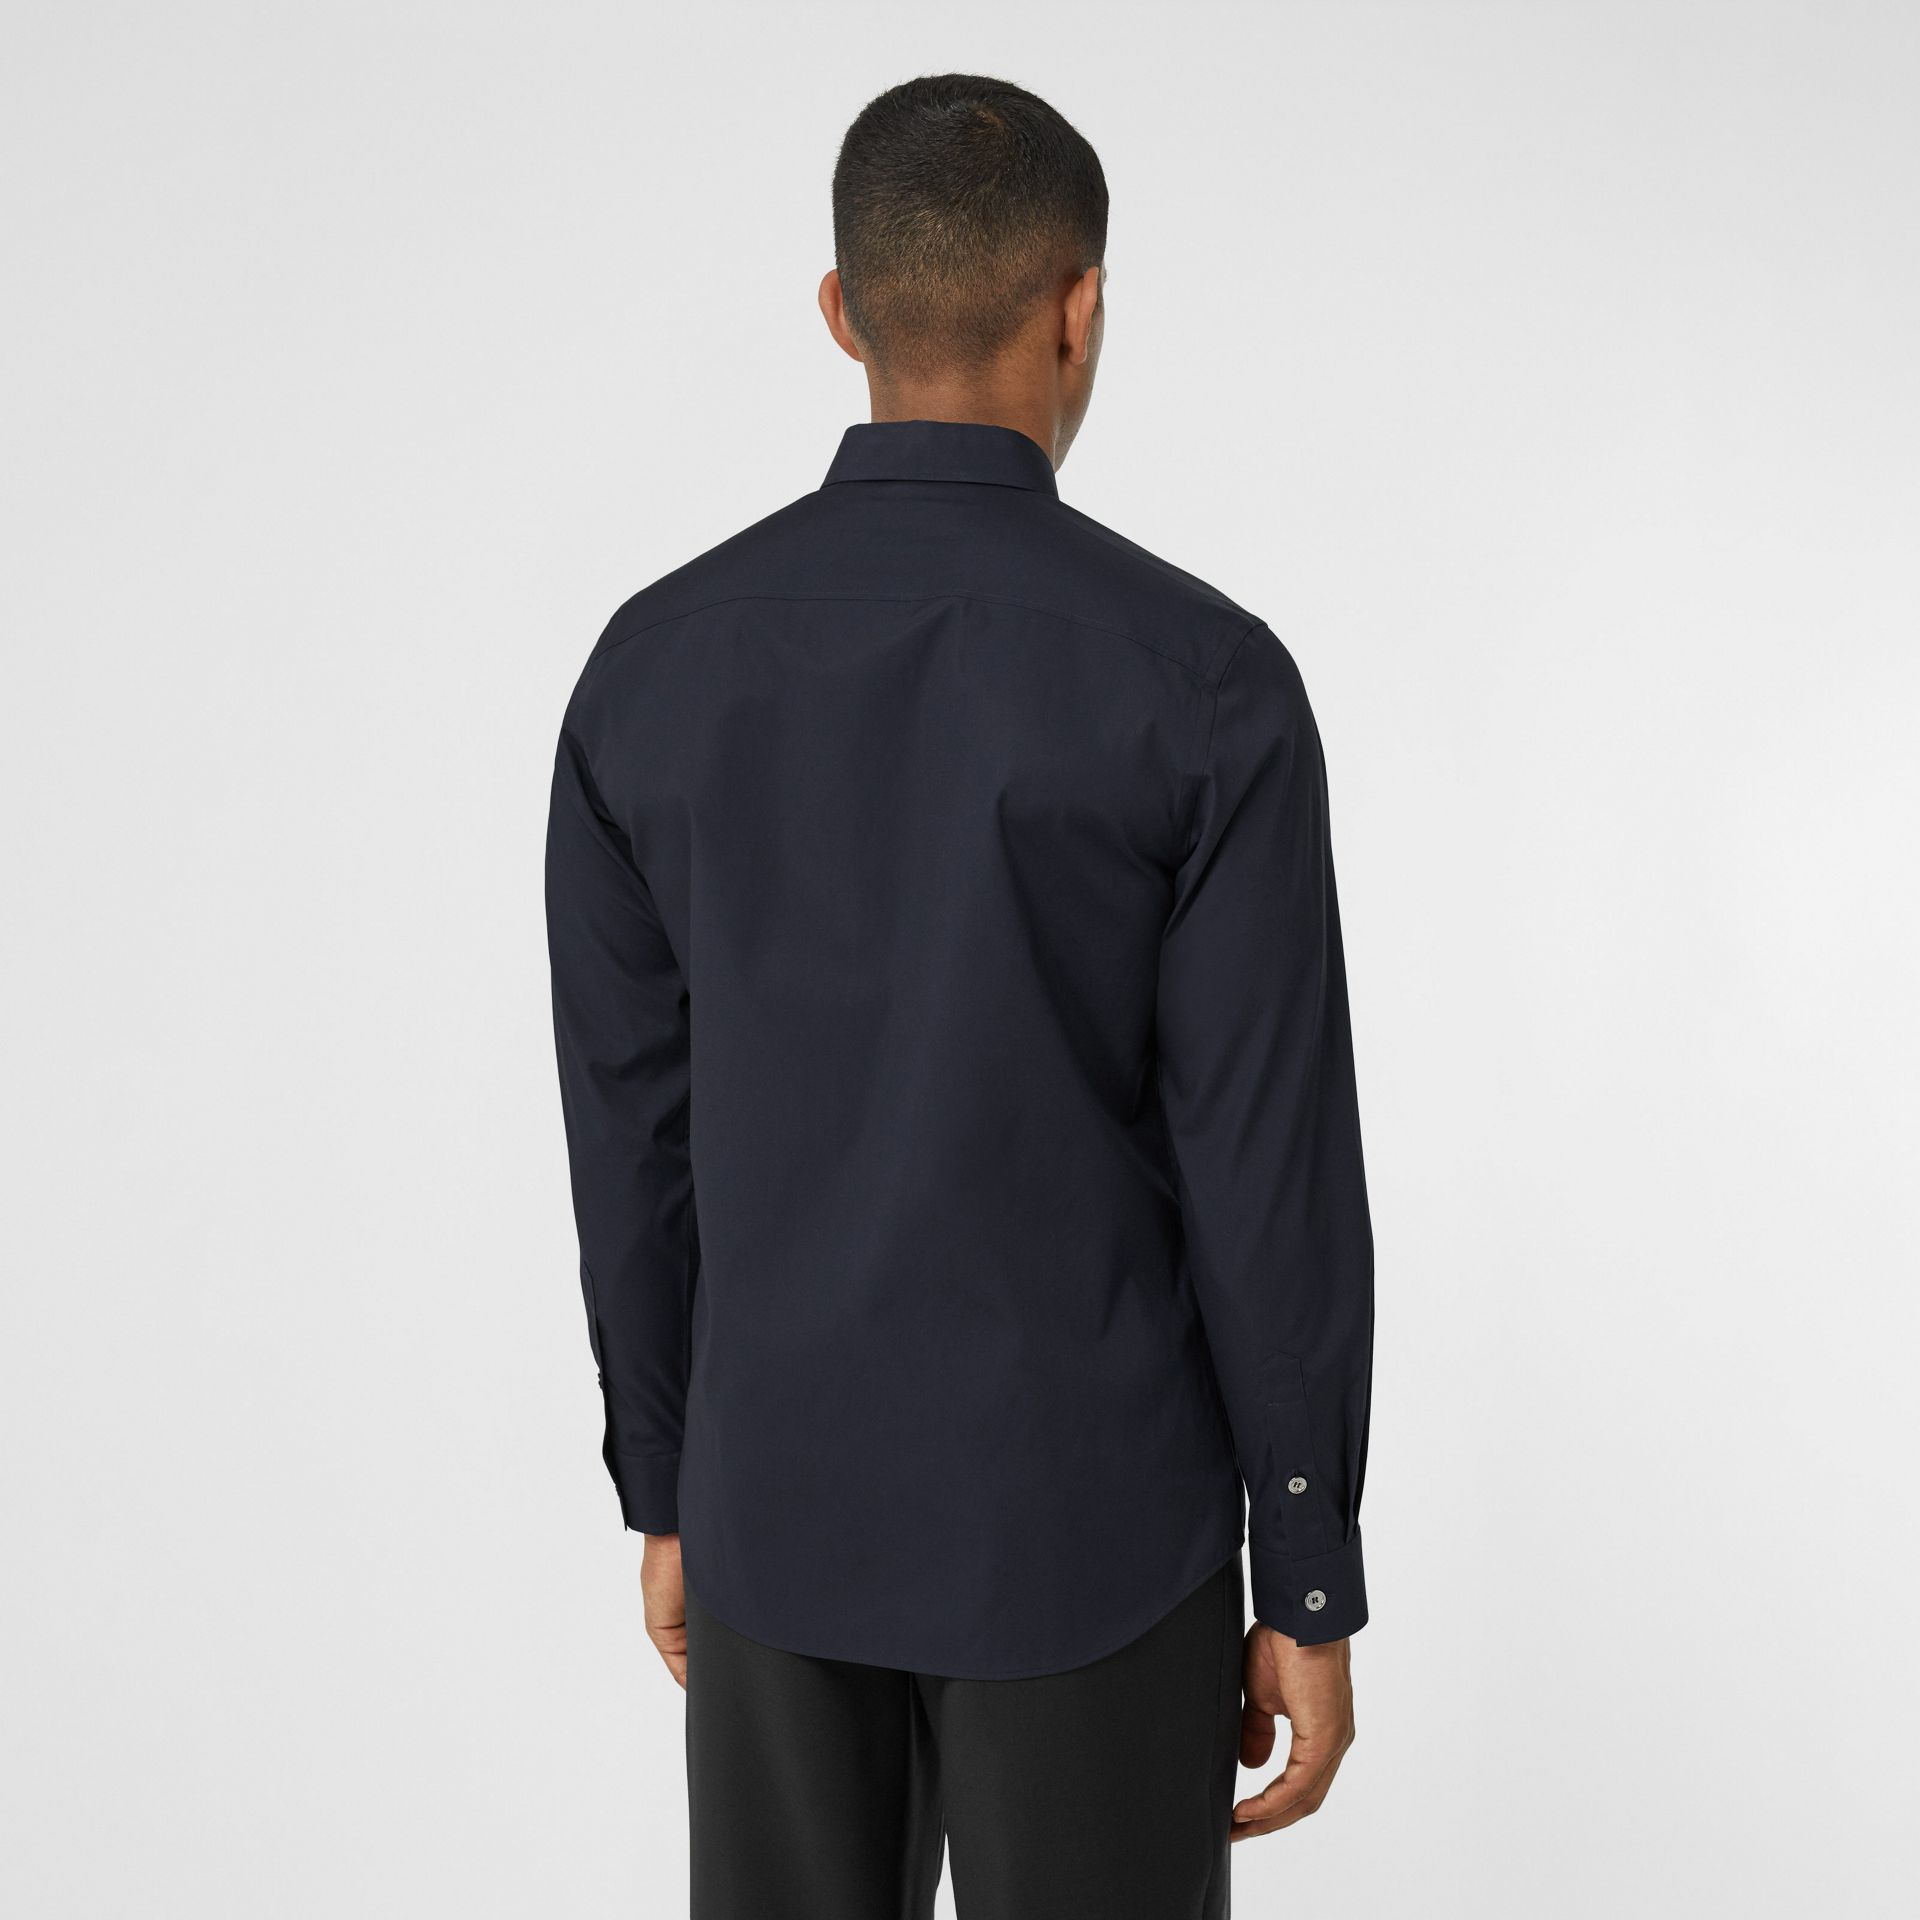 Monogram Motif Stretch Cotton Poplin Shirt in Navy - Men | Burberry Australia - gallery image 2